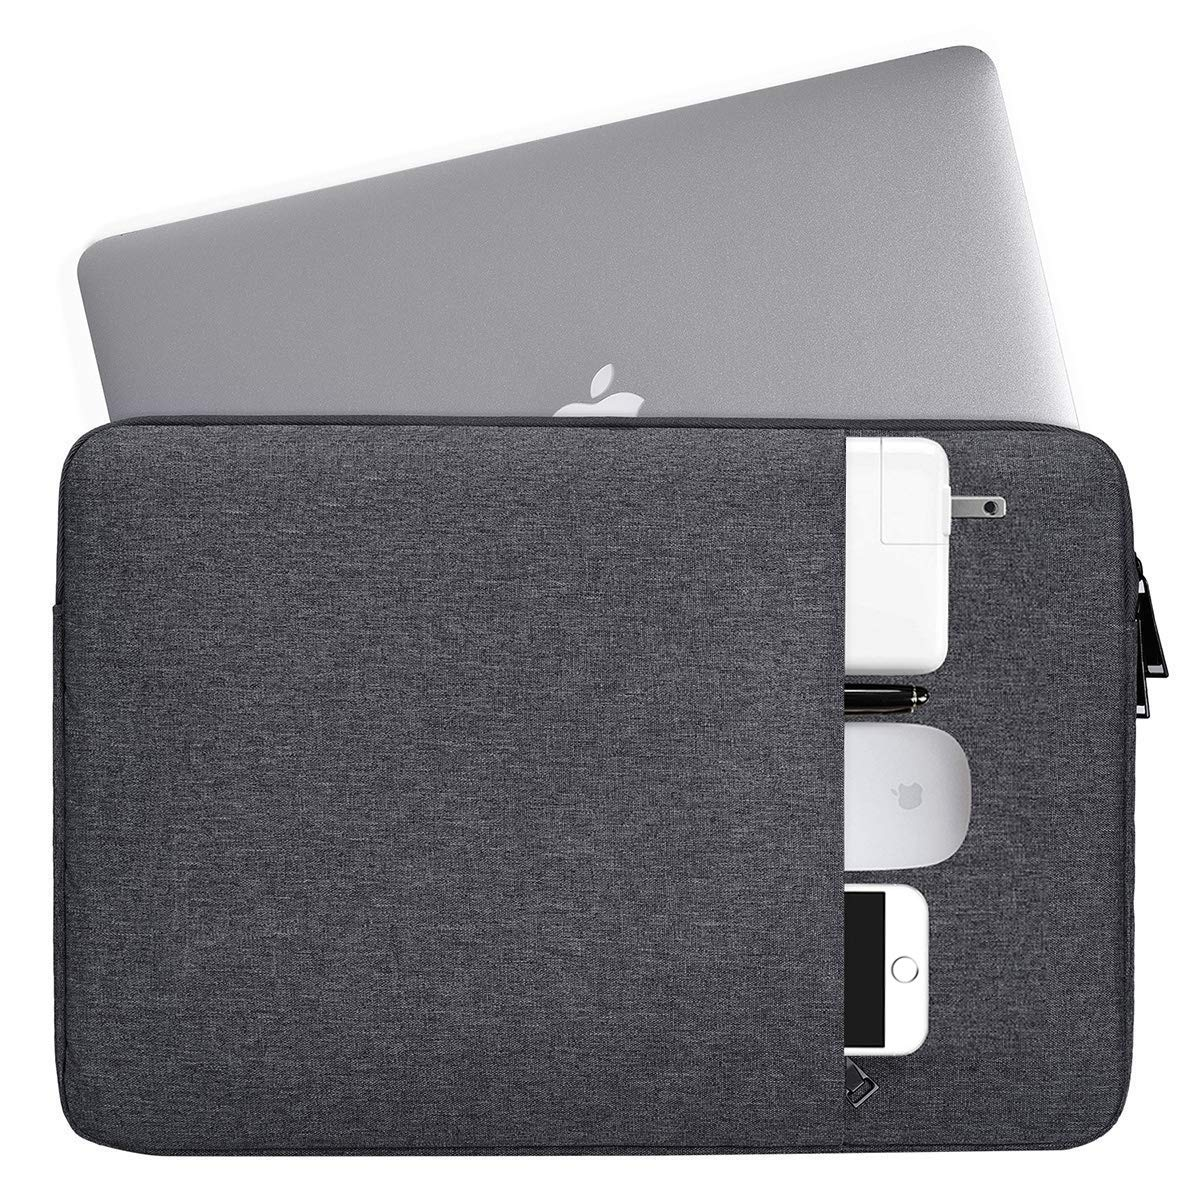 Funda Para Laptop De 15.6 Acer Aspire, Dell Inspiron, Yoga